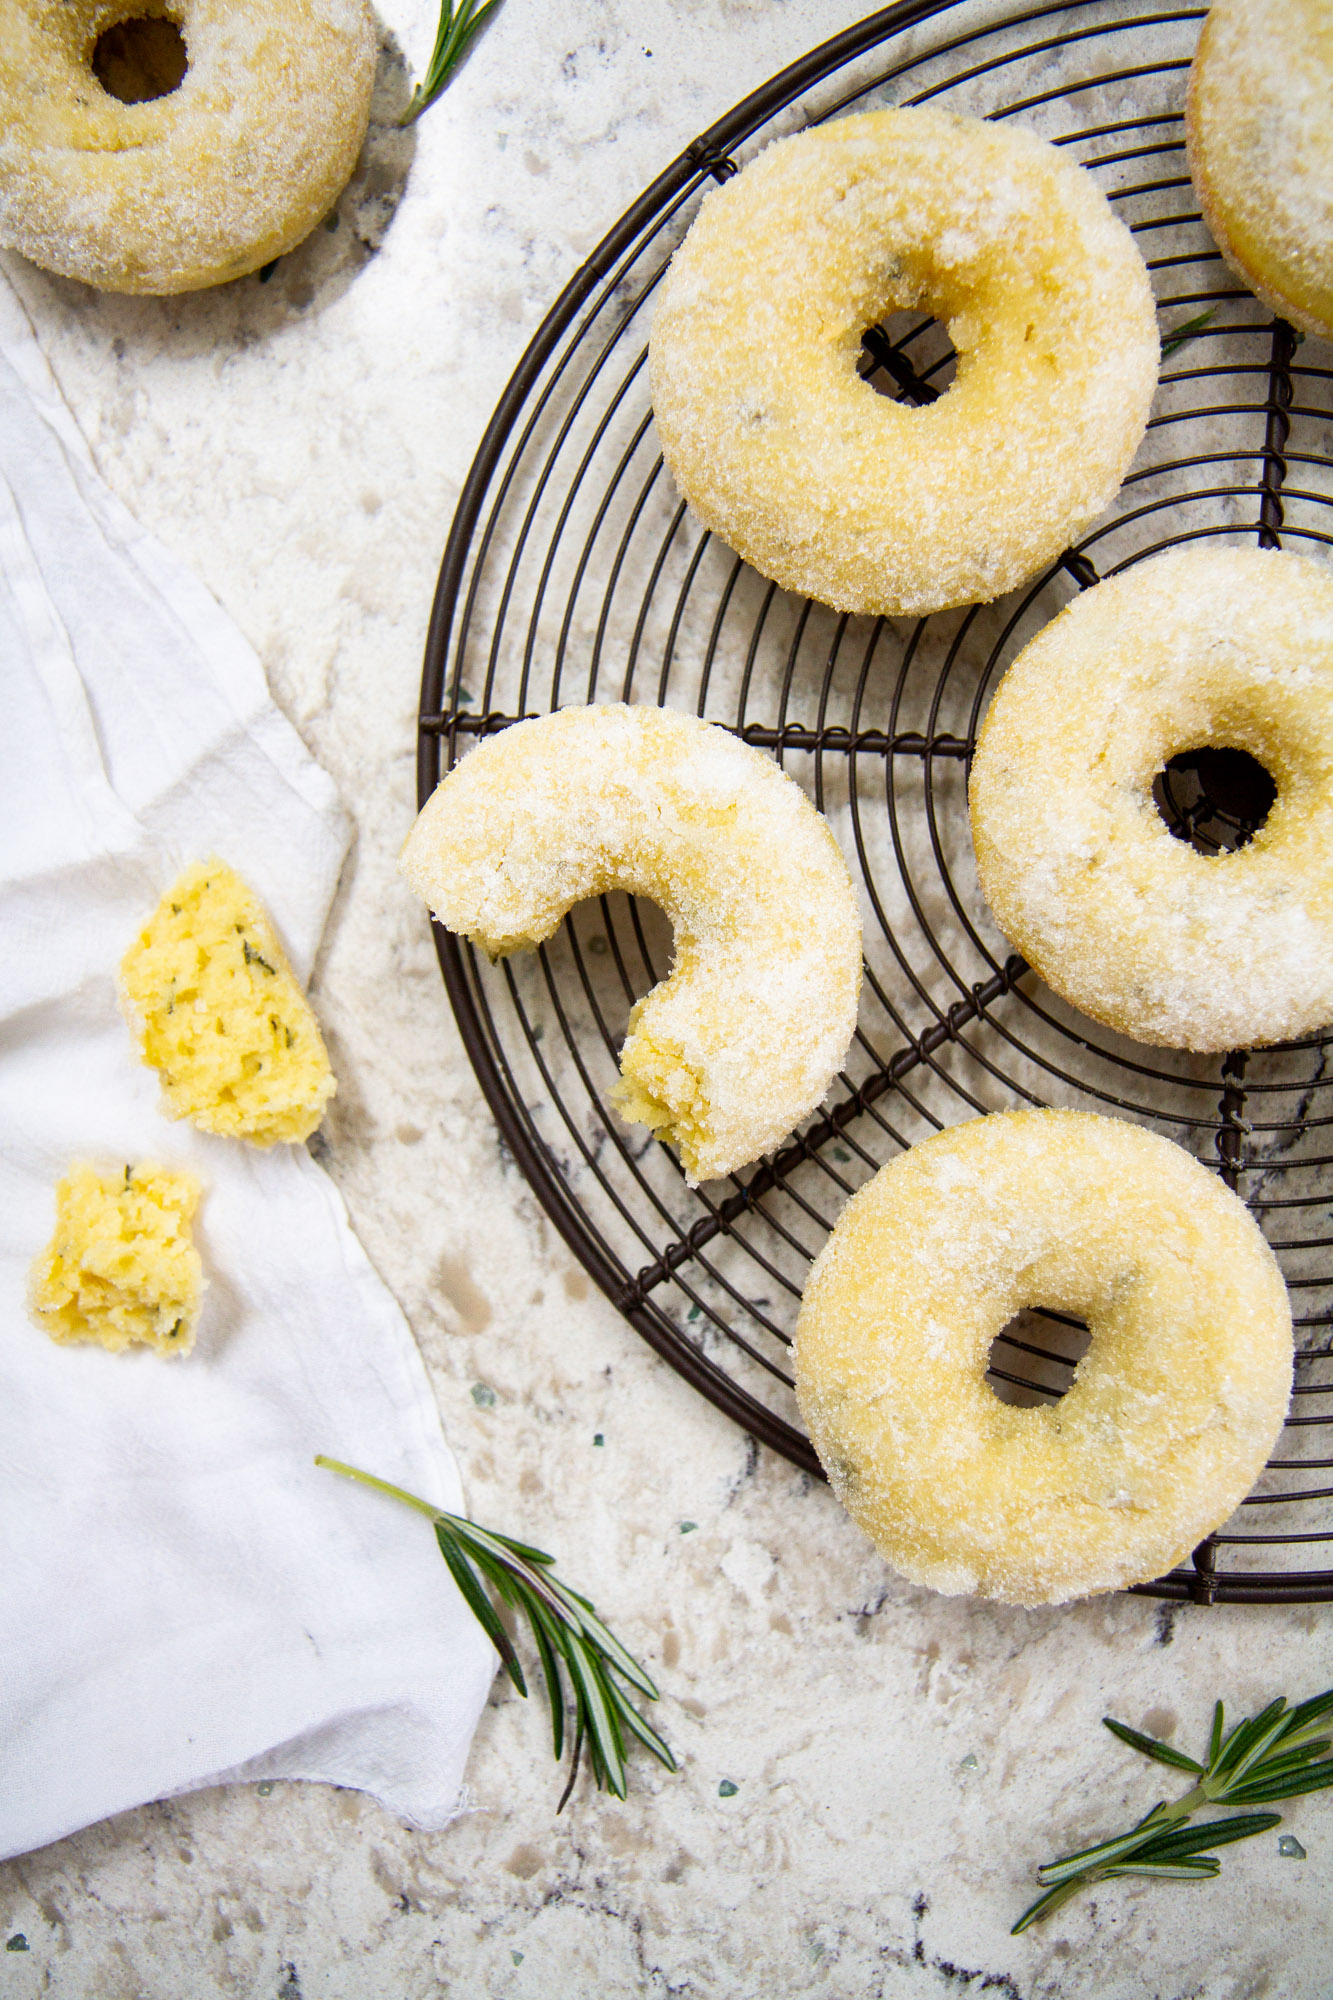 Lemon-Rosemary Olive Oil Cake Donuts -- A deliciously moist and tender baked donut recipe flavored with fresh lemon, rosemary, and olive oil and tossed in sugar. @girlversusdough #girlversusdough #doughnuts #breakfast